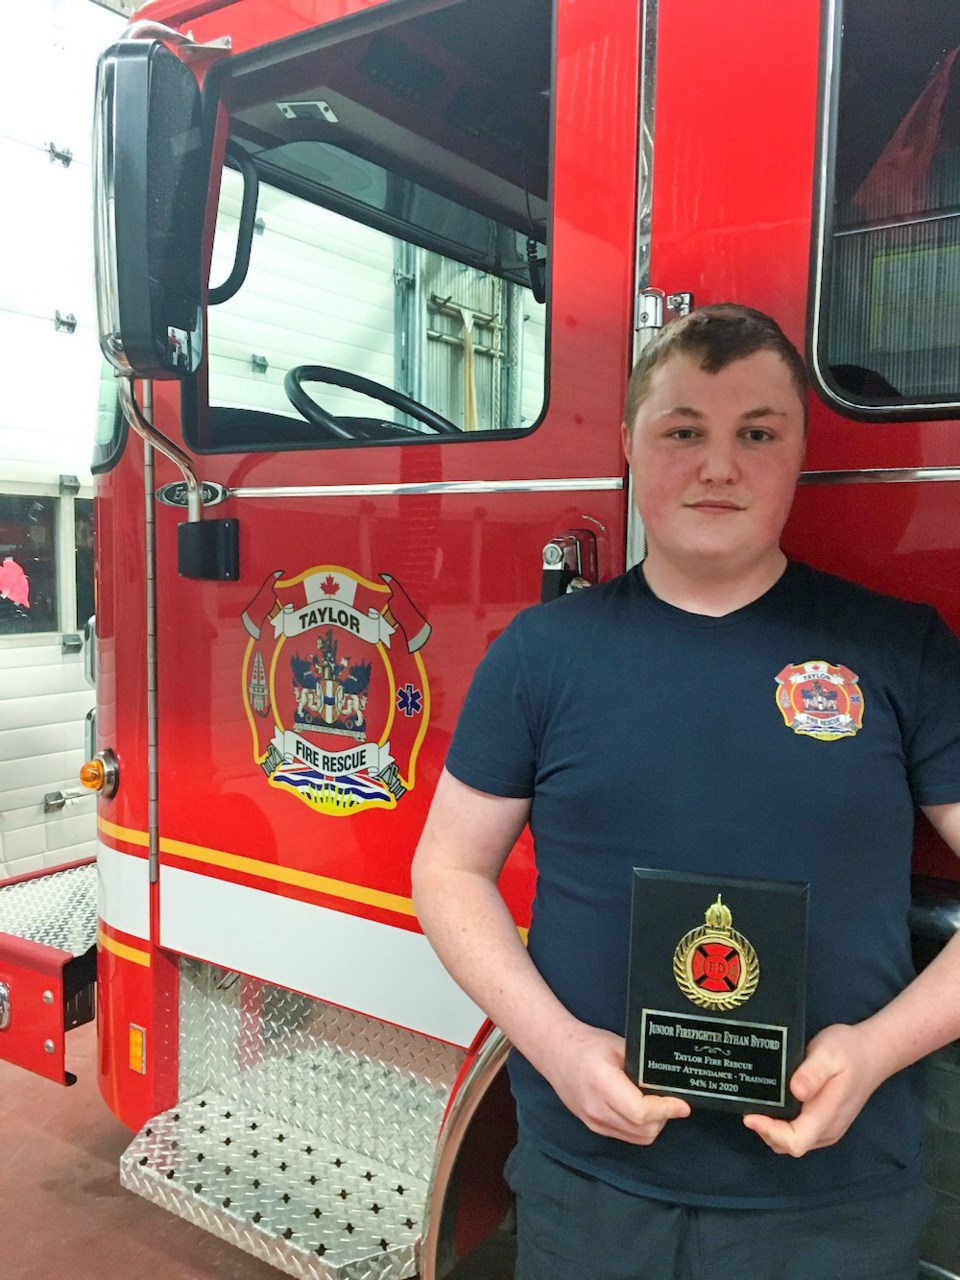 Ethan-Byford-Taylor-Fire-Rescue